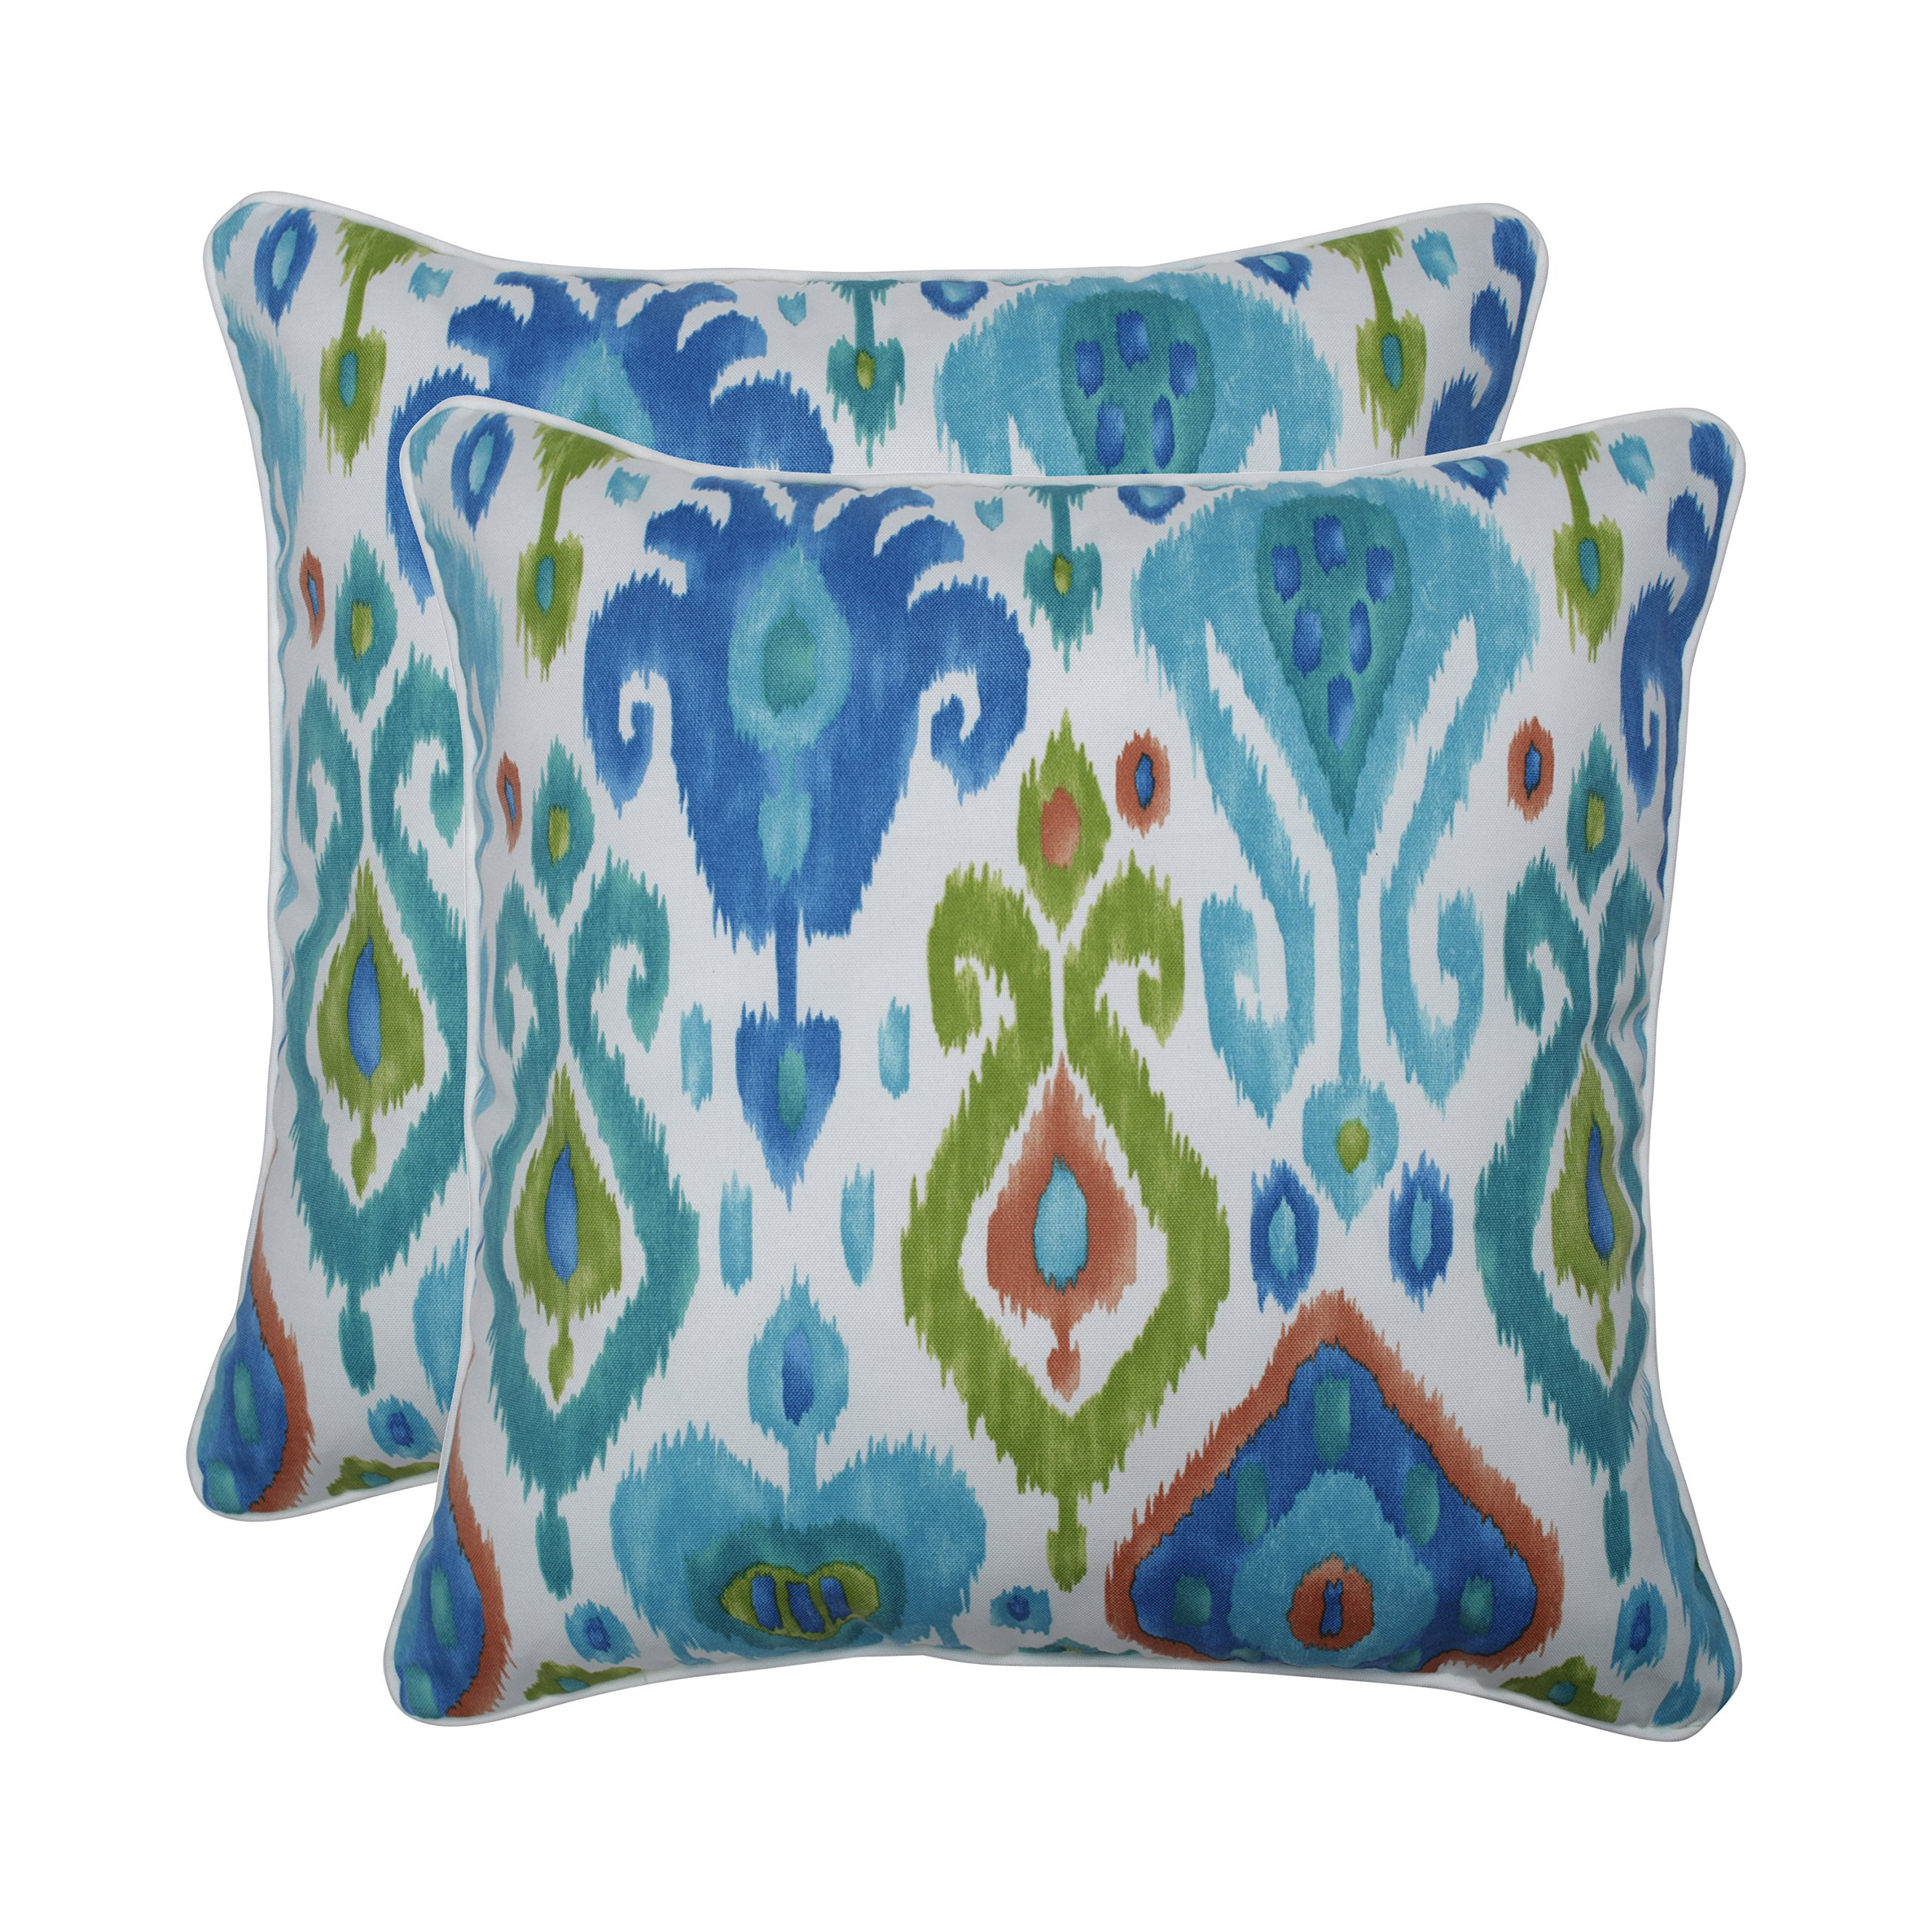 Pillow Perfect Outdoor | Indoor Paso Caribe 18.5-inch Throw Pillow (Set of 2), Blue